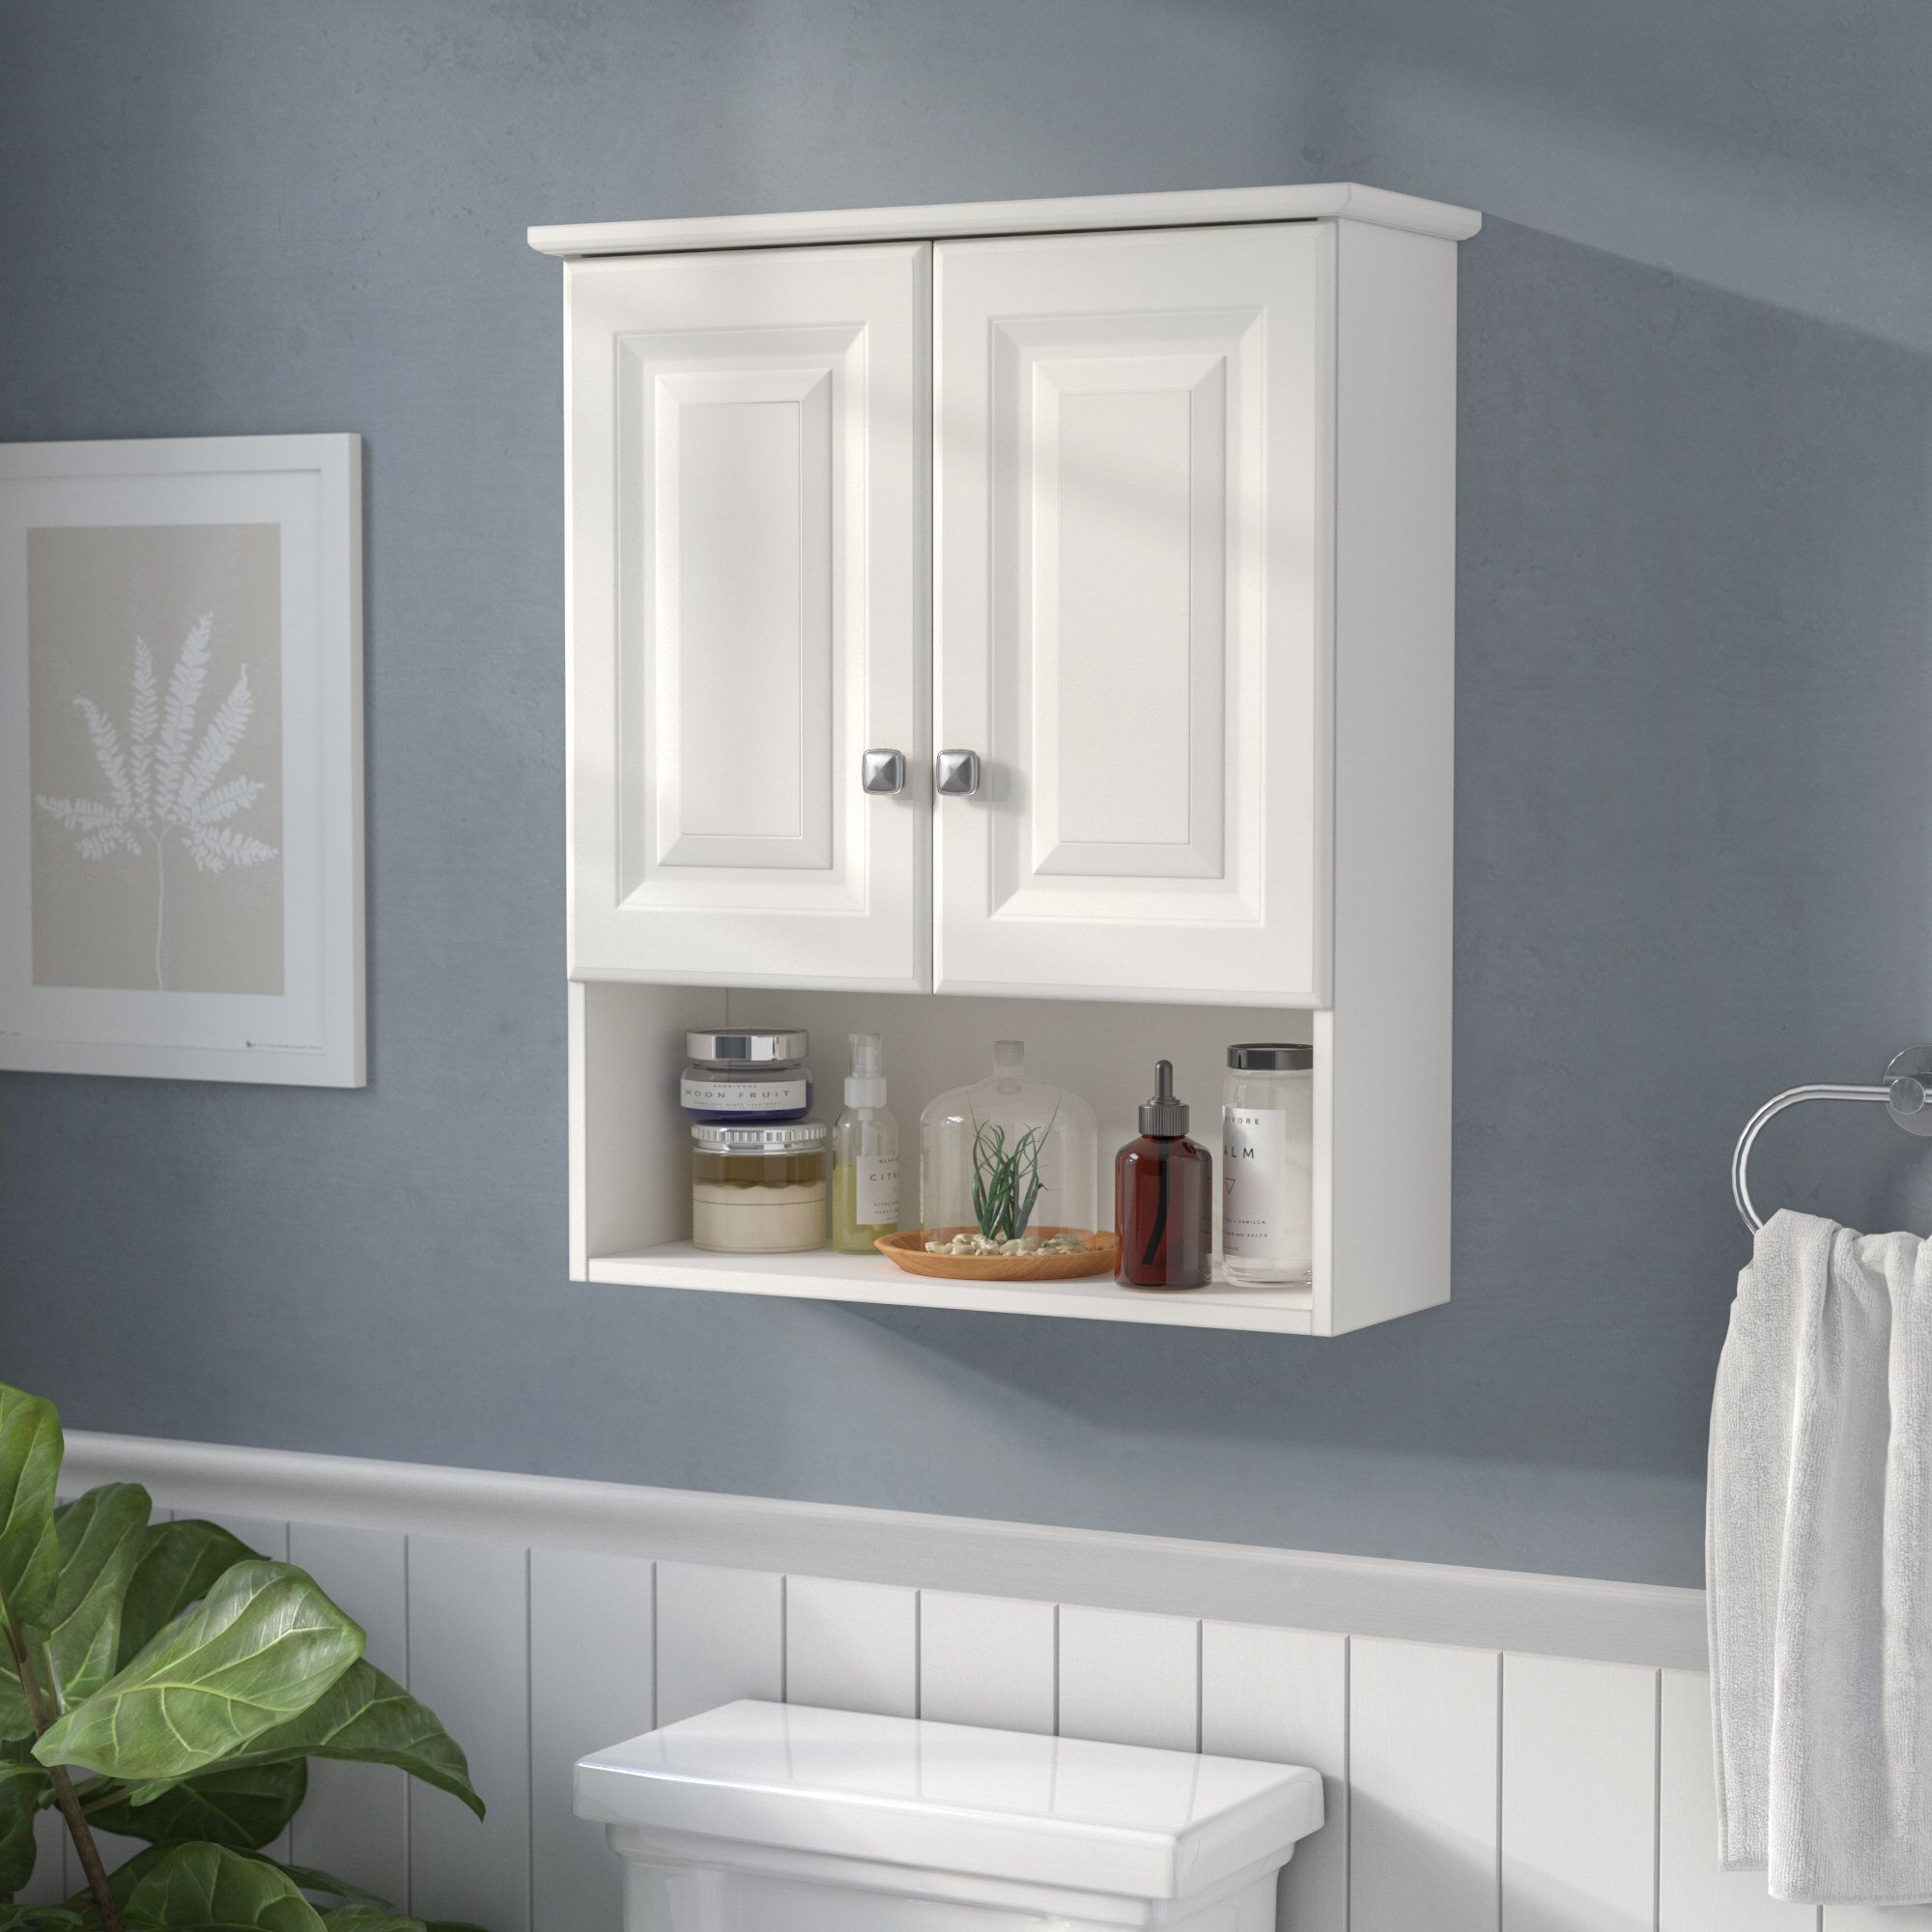 Cates 22 W X 26 H Wall Mounted Cabinet Wall Mounted Bathroom Cabinets Wall Mounted Cabinet Small Bathroom Storage [ 2000 x 2000 Pixel ]